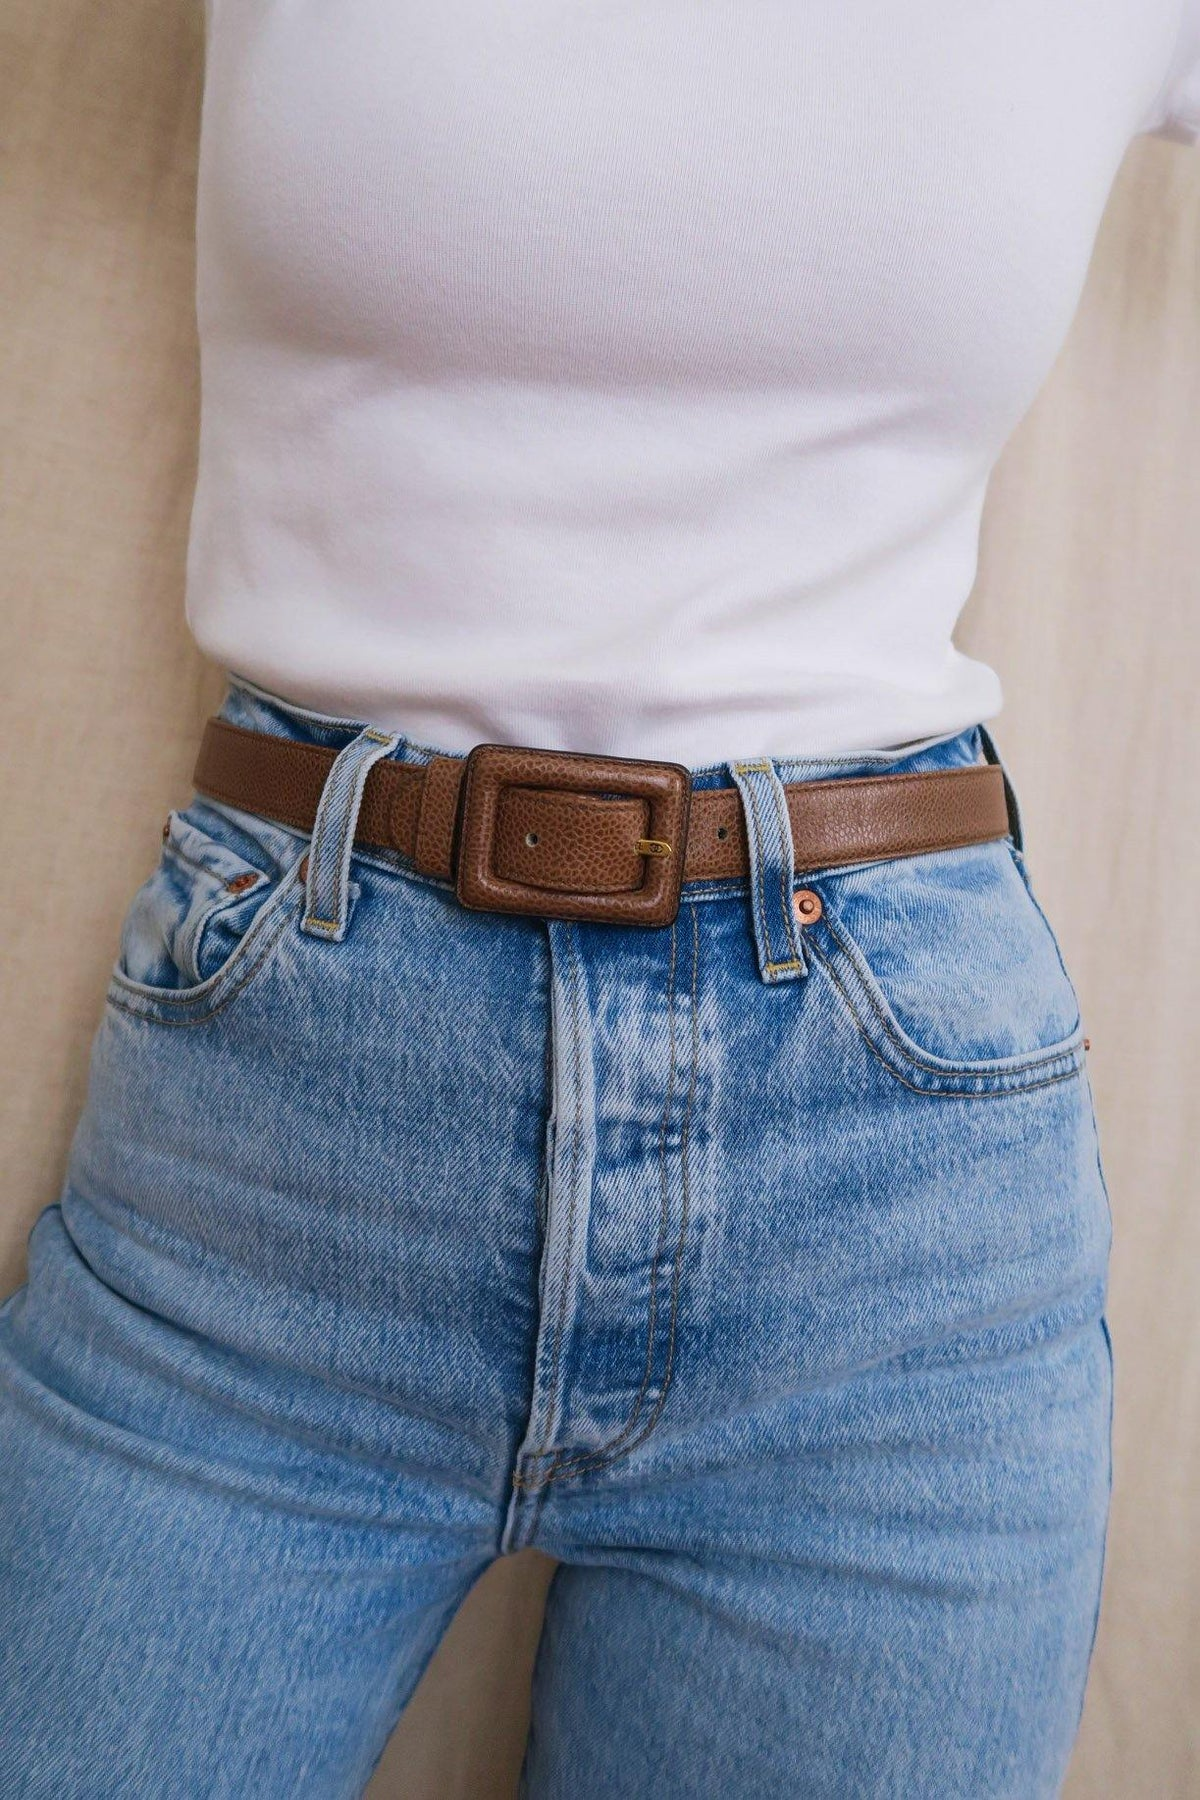 Brown Caviar Leather Belt - Sweet & Spark